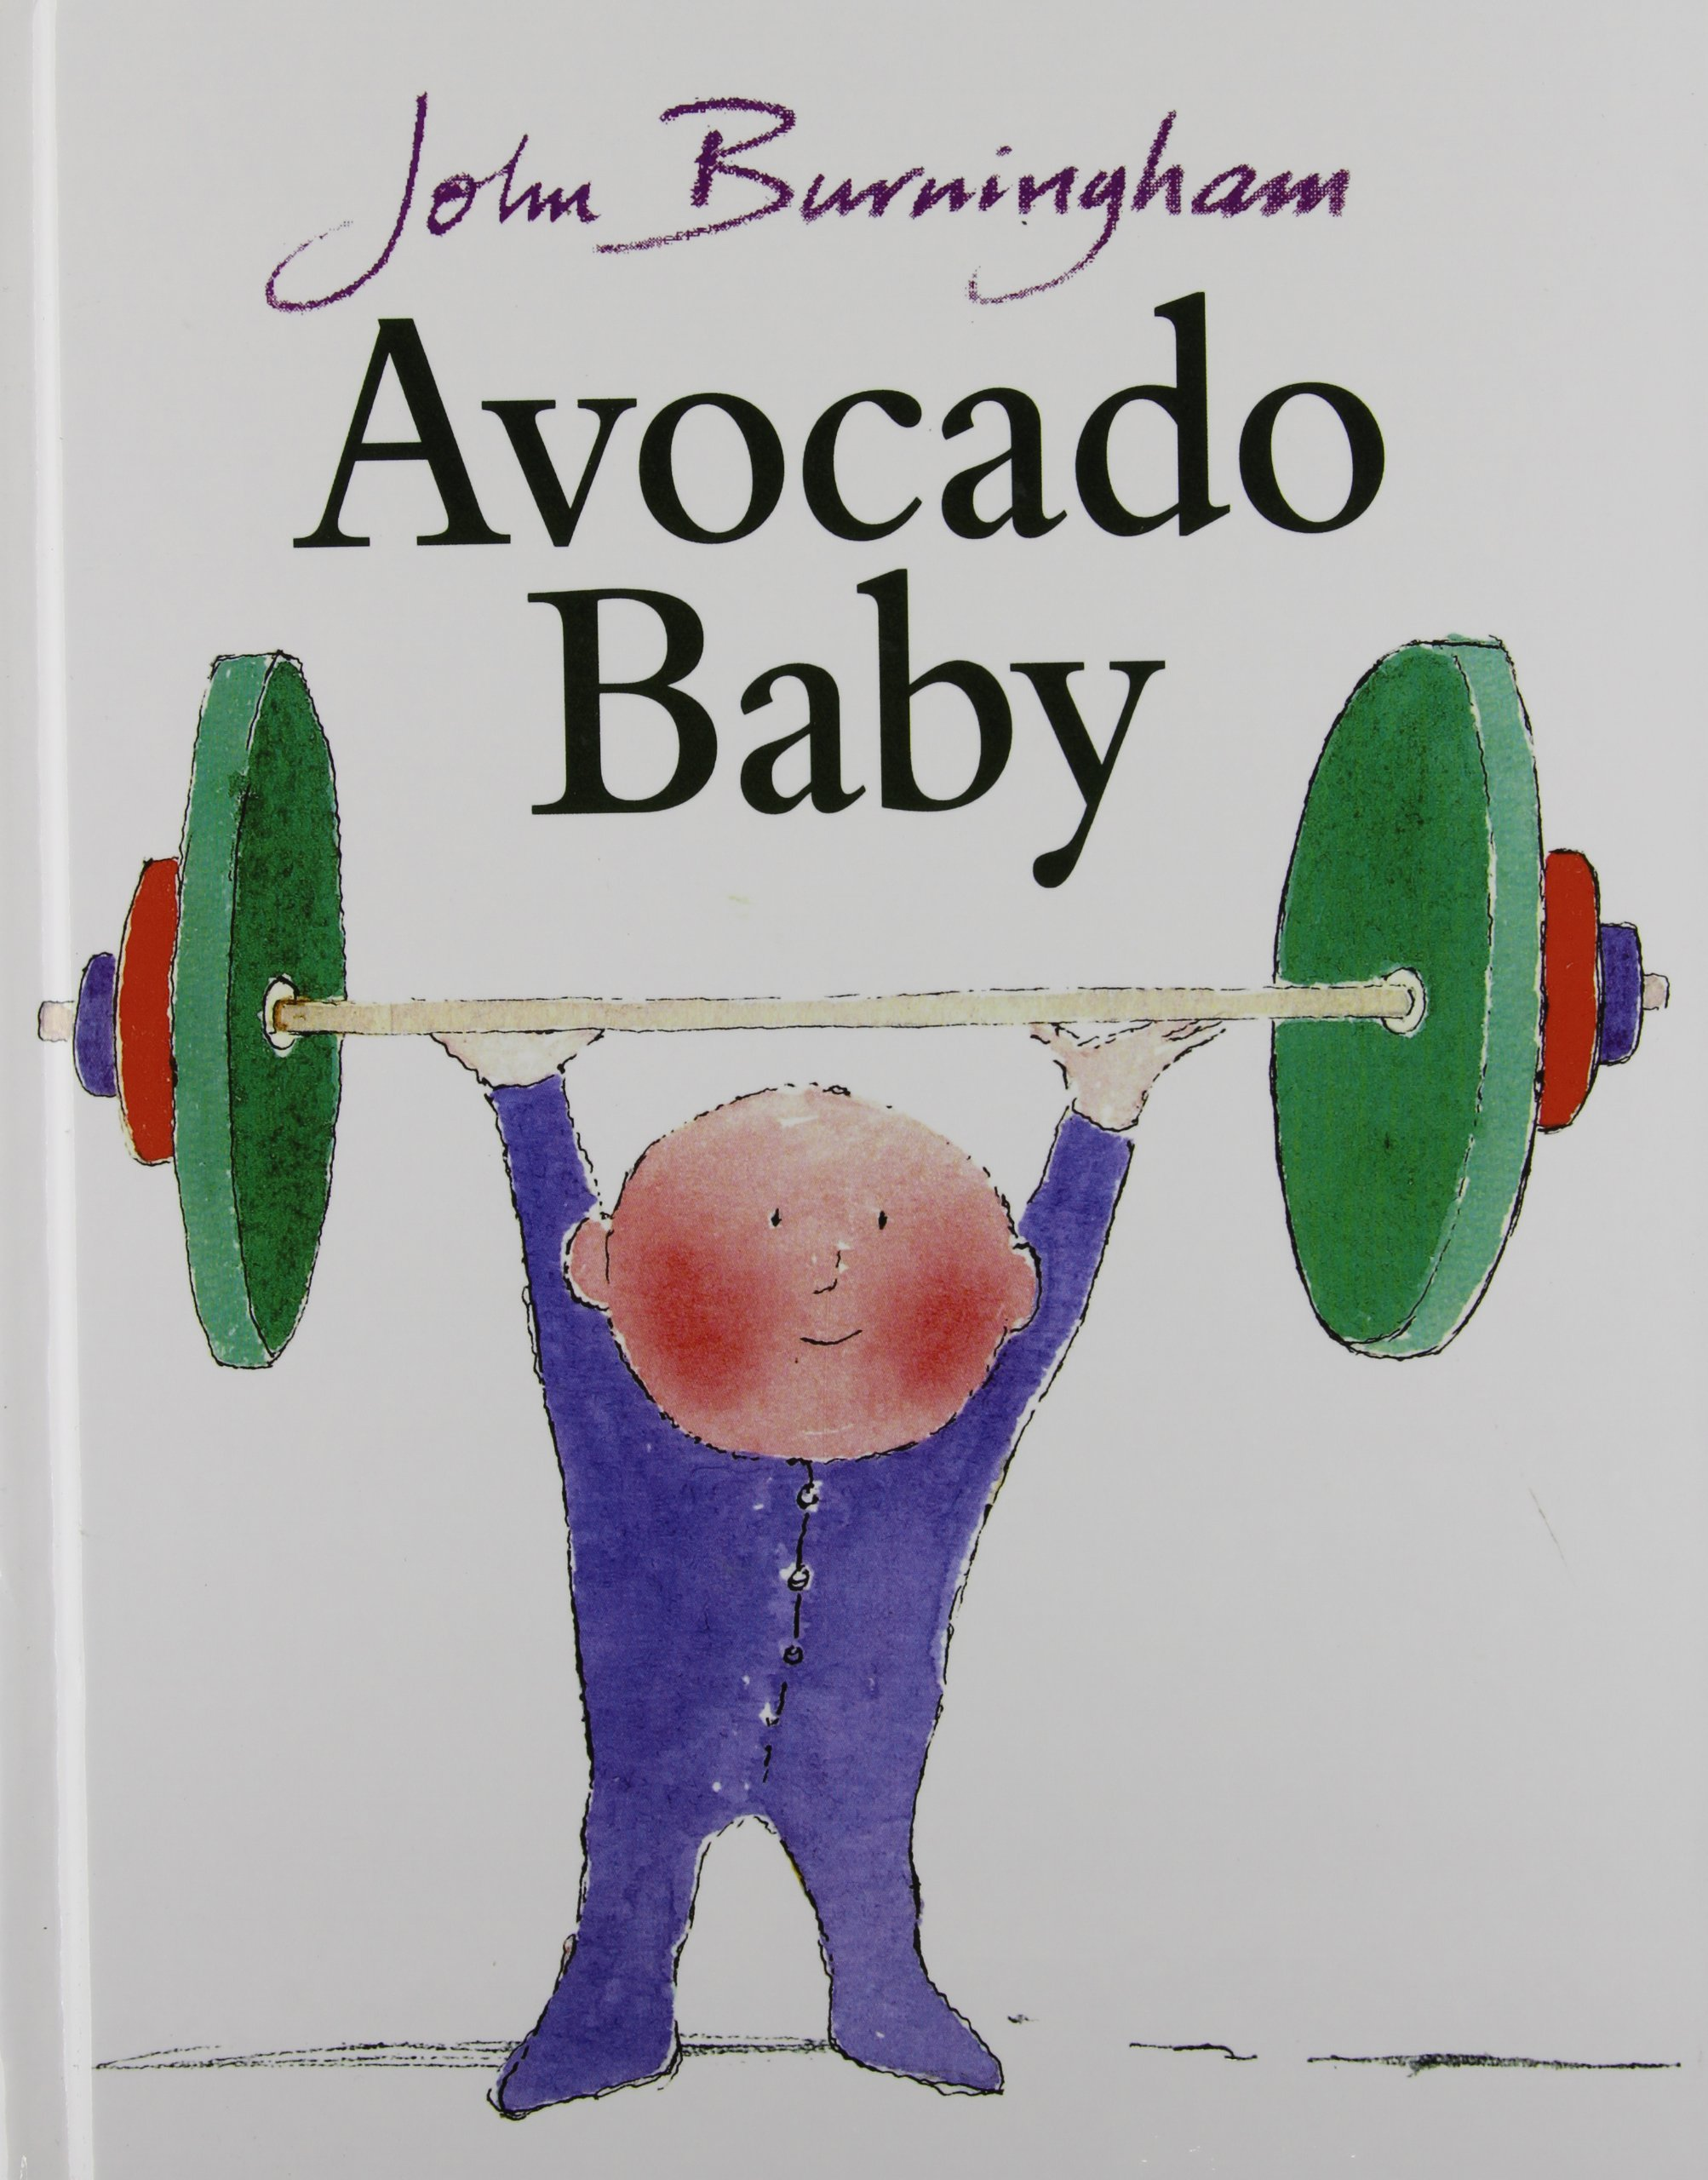 Avocado Baby by Paw Prints 2007-06-28 (Image #1)